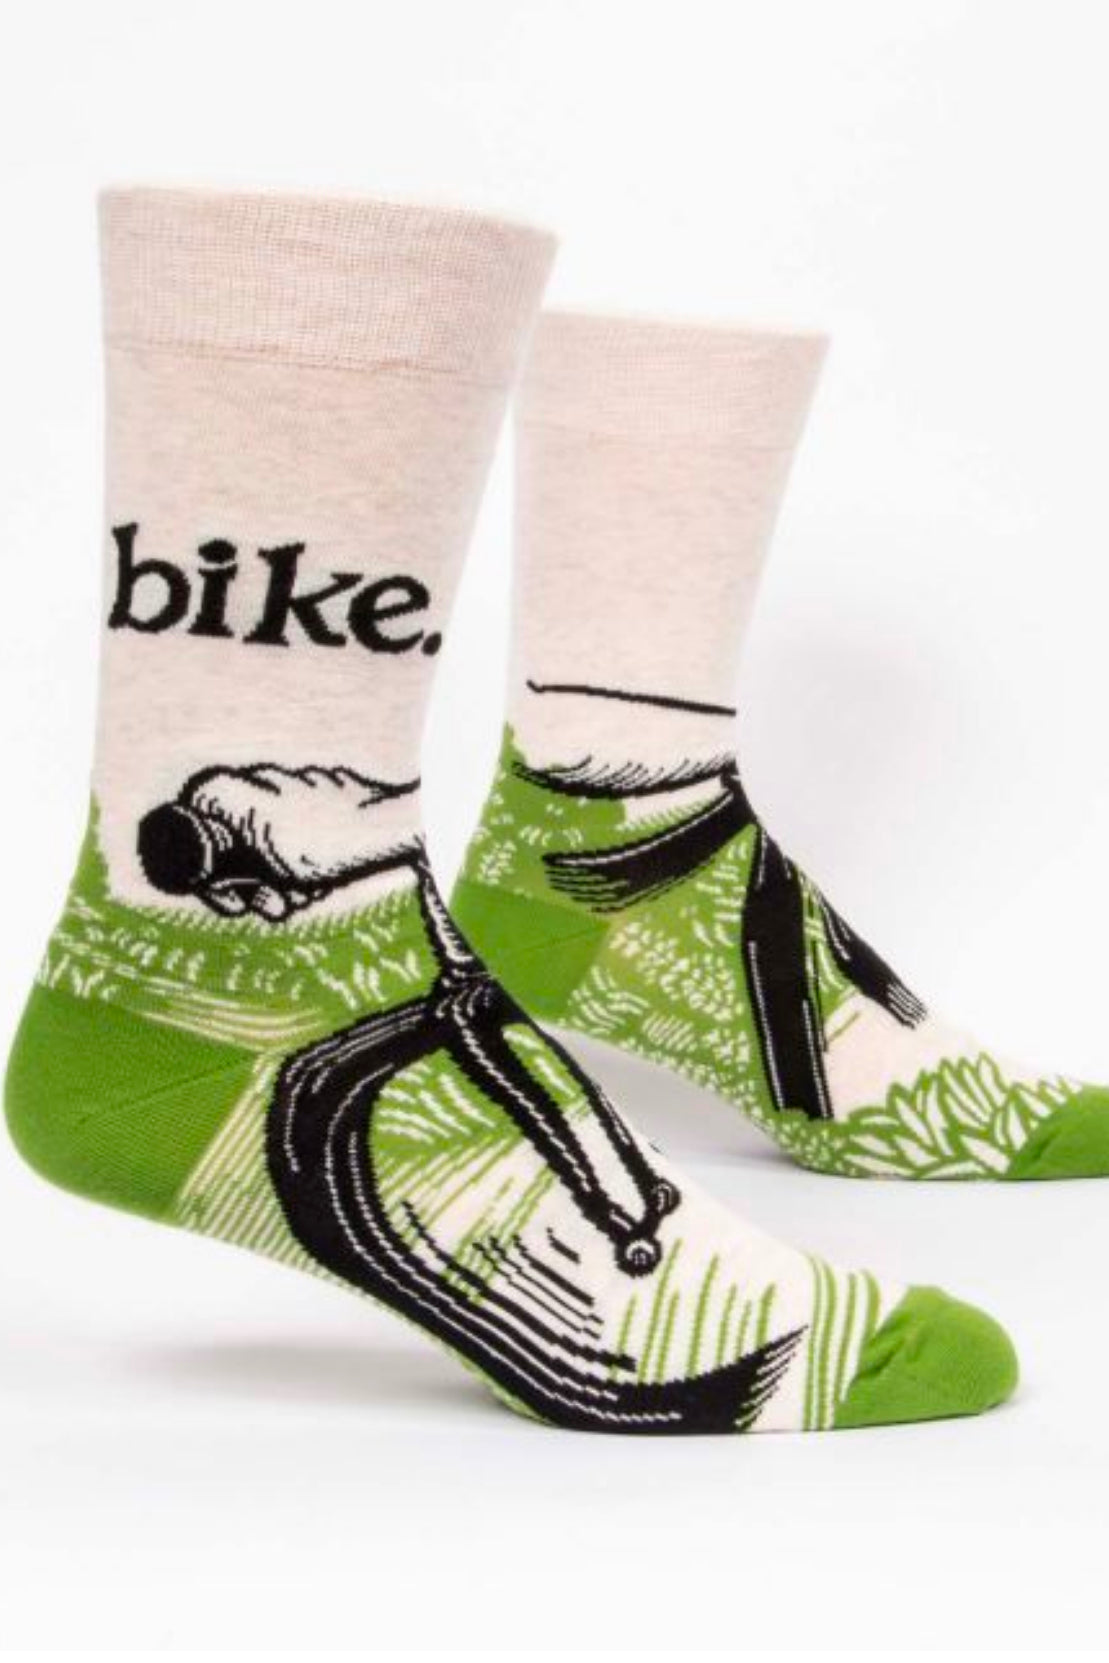 Blue Q Bike Path Men's socks